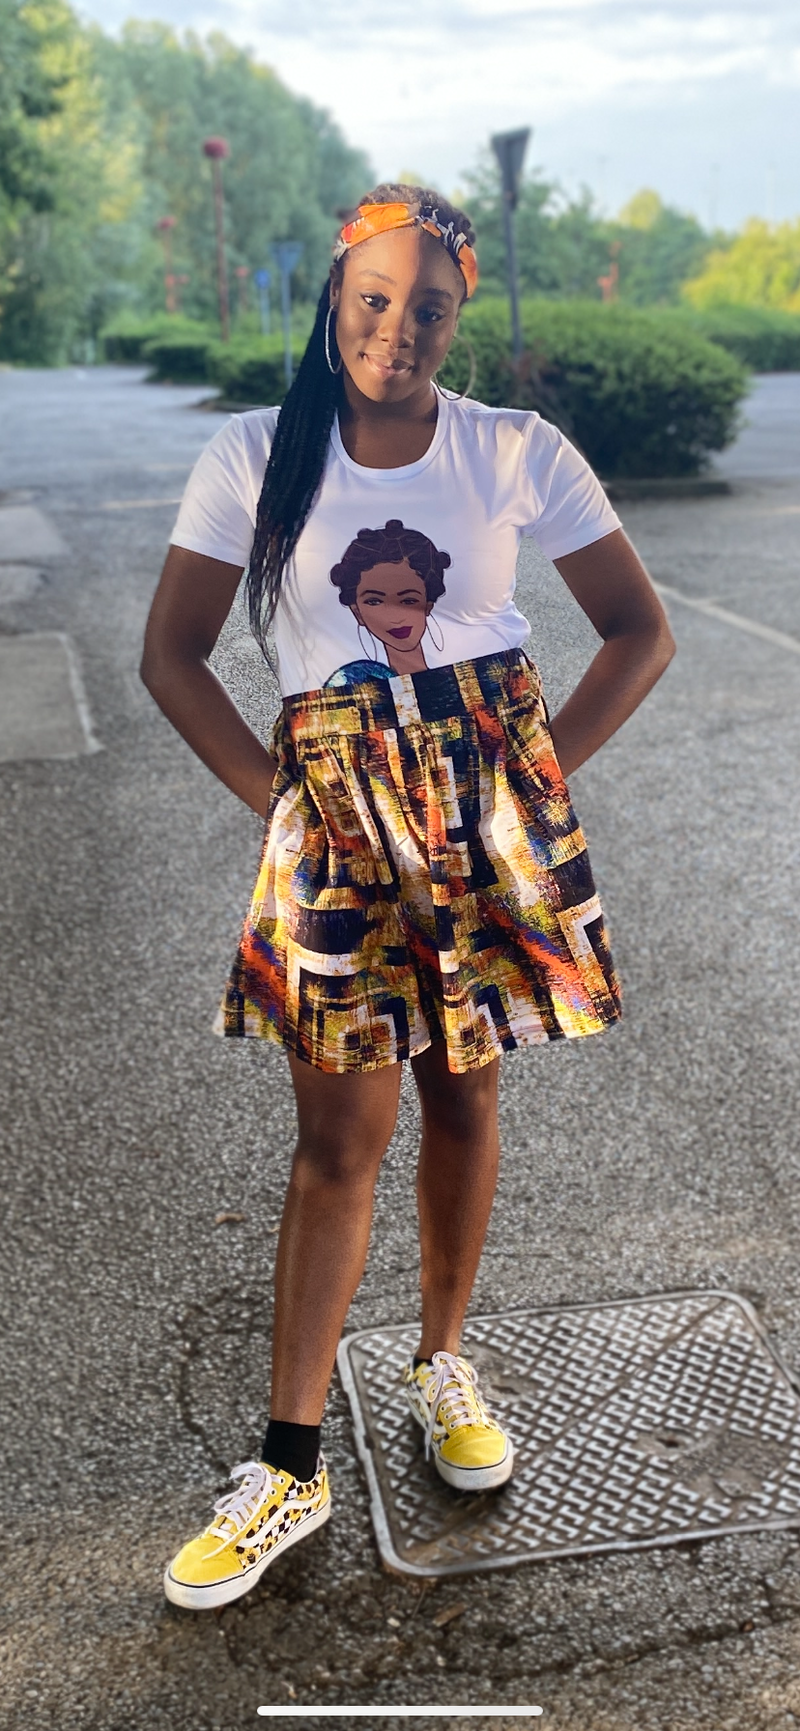 BAE collection temad tshirt african print ankara face 3d tshirt